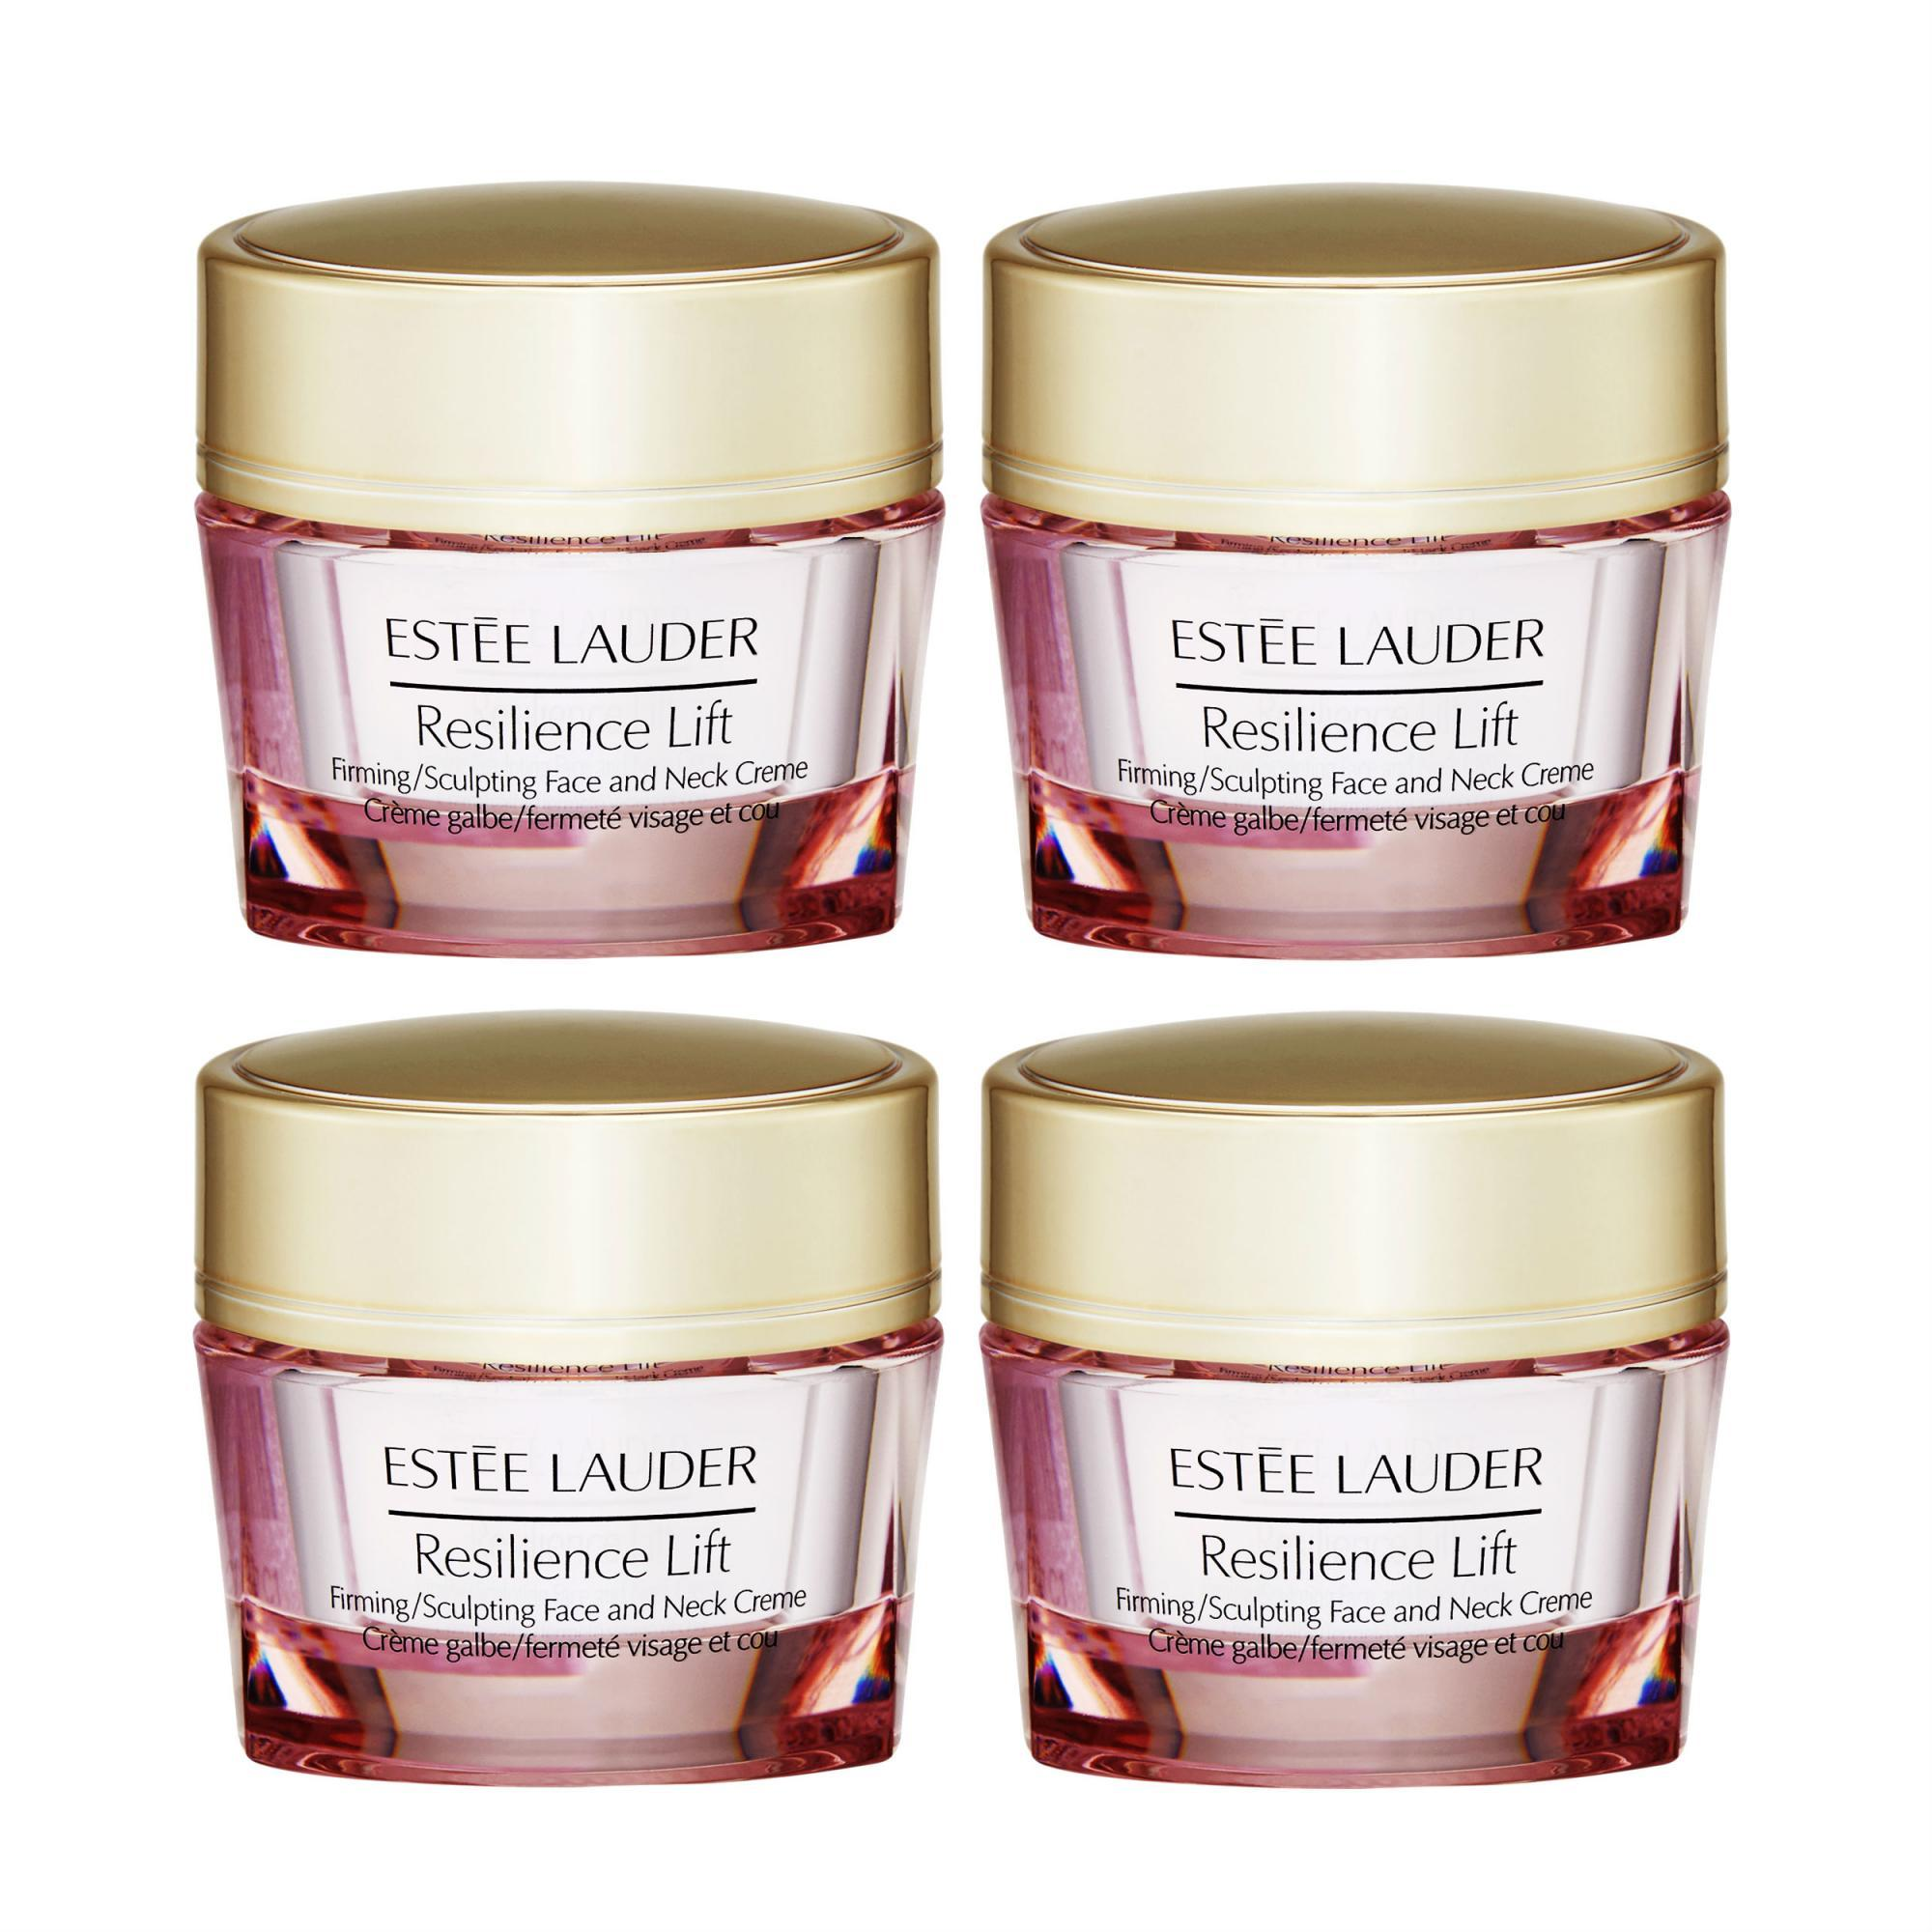 4 x Estee Lauder Resilience Lift Firming/Sculpting Face and Neck Creme 15ml/0.5oz - intl